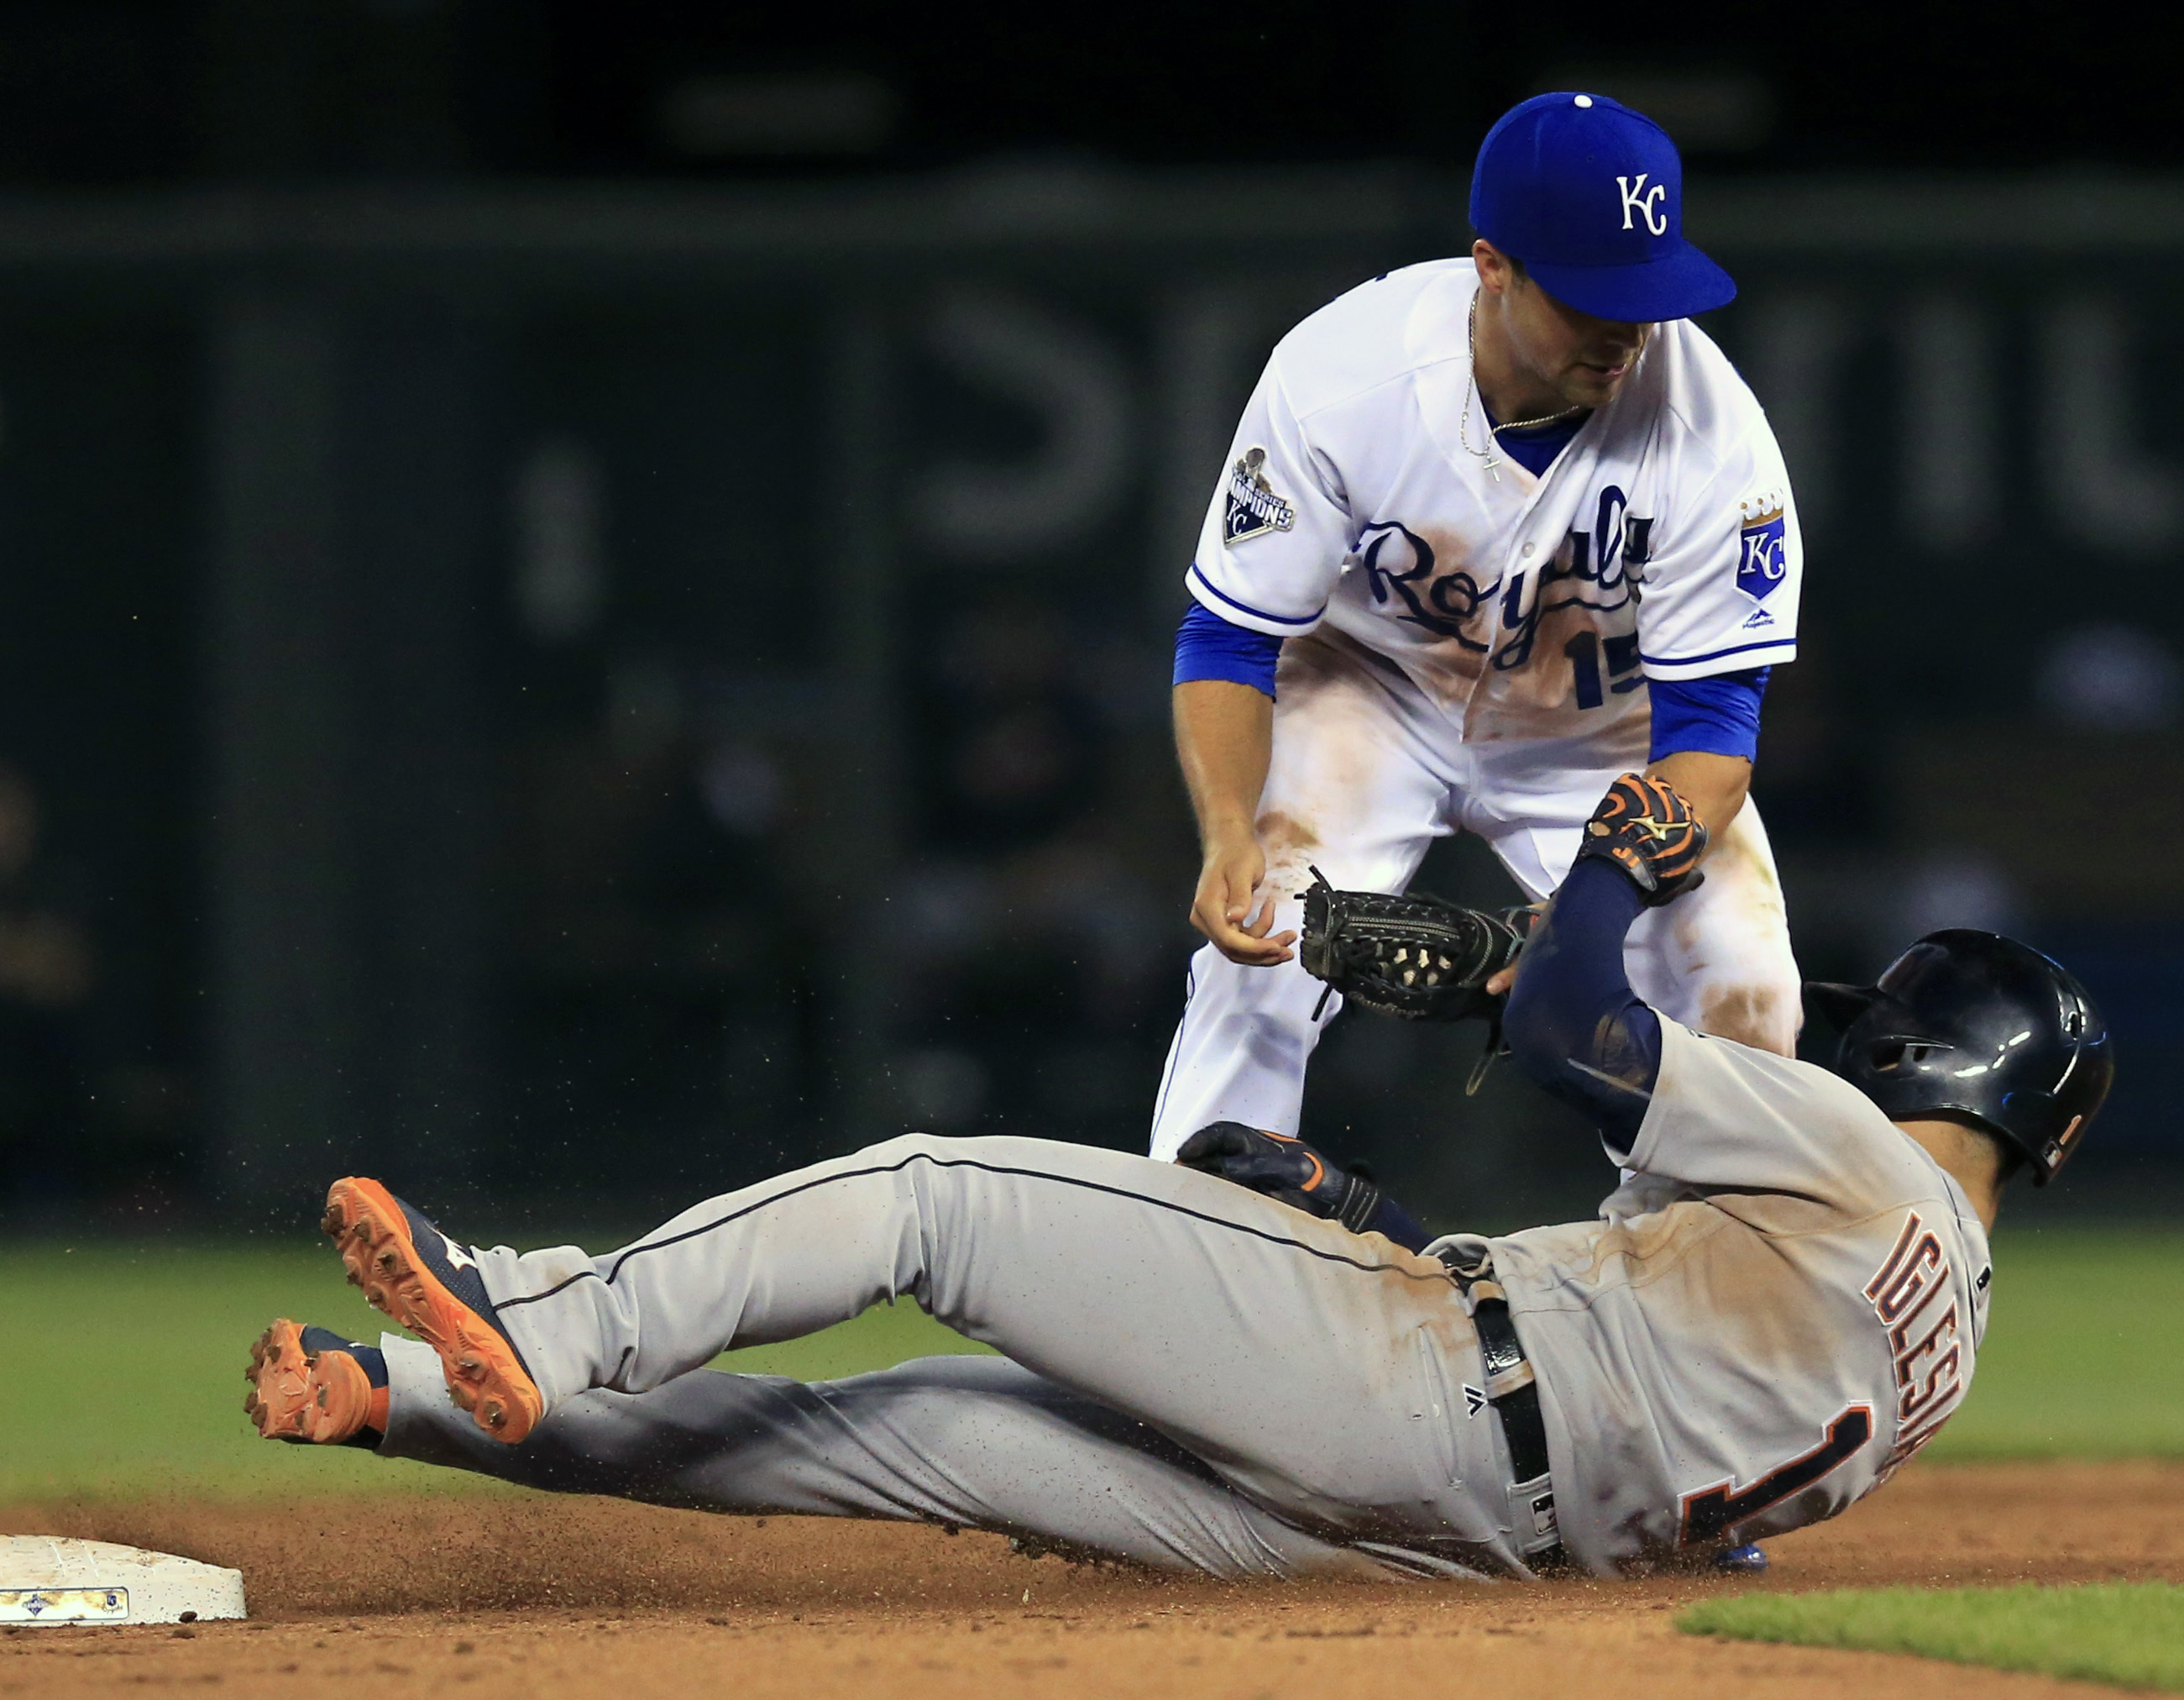 Kansas City Royals second baseman Whit Merrifield (15) tags out Detroit Tigers' Jose Iglesias (1) during the seventh inning of a baseball game at Kauffman Stadium in Kansas City, Mo., Saturday, June 18, 2016. Iglesias was out on a fielder's choice on the